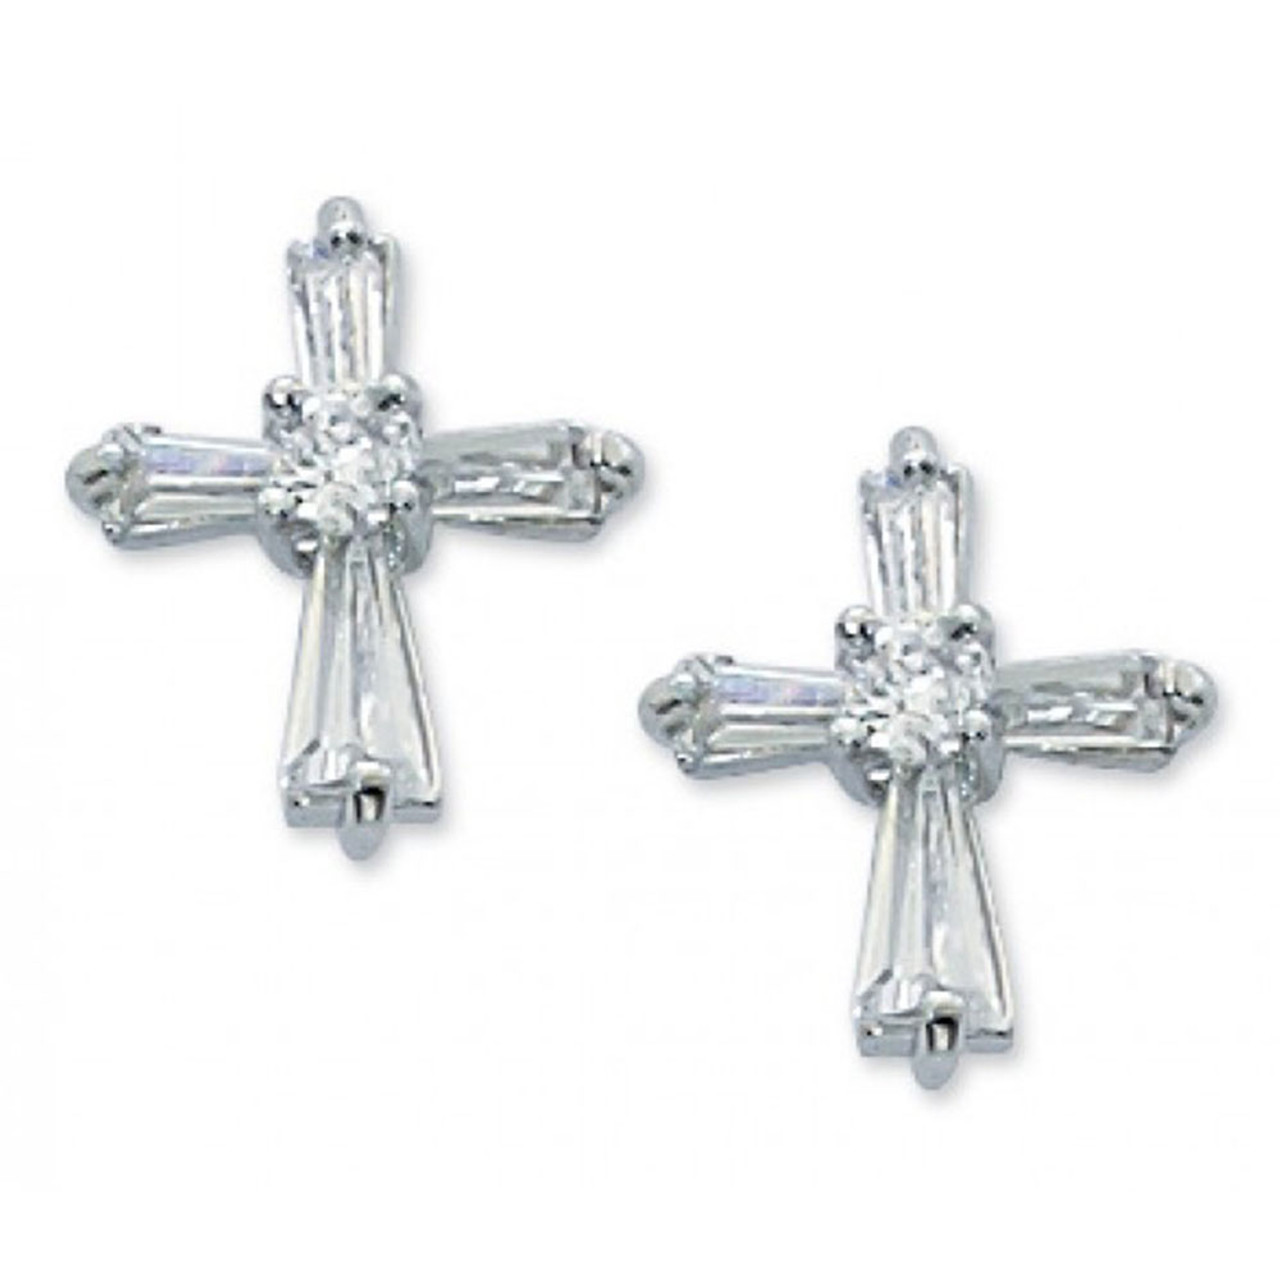 Crystal Cubic Zirconia Earrings 1/2IN